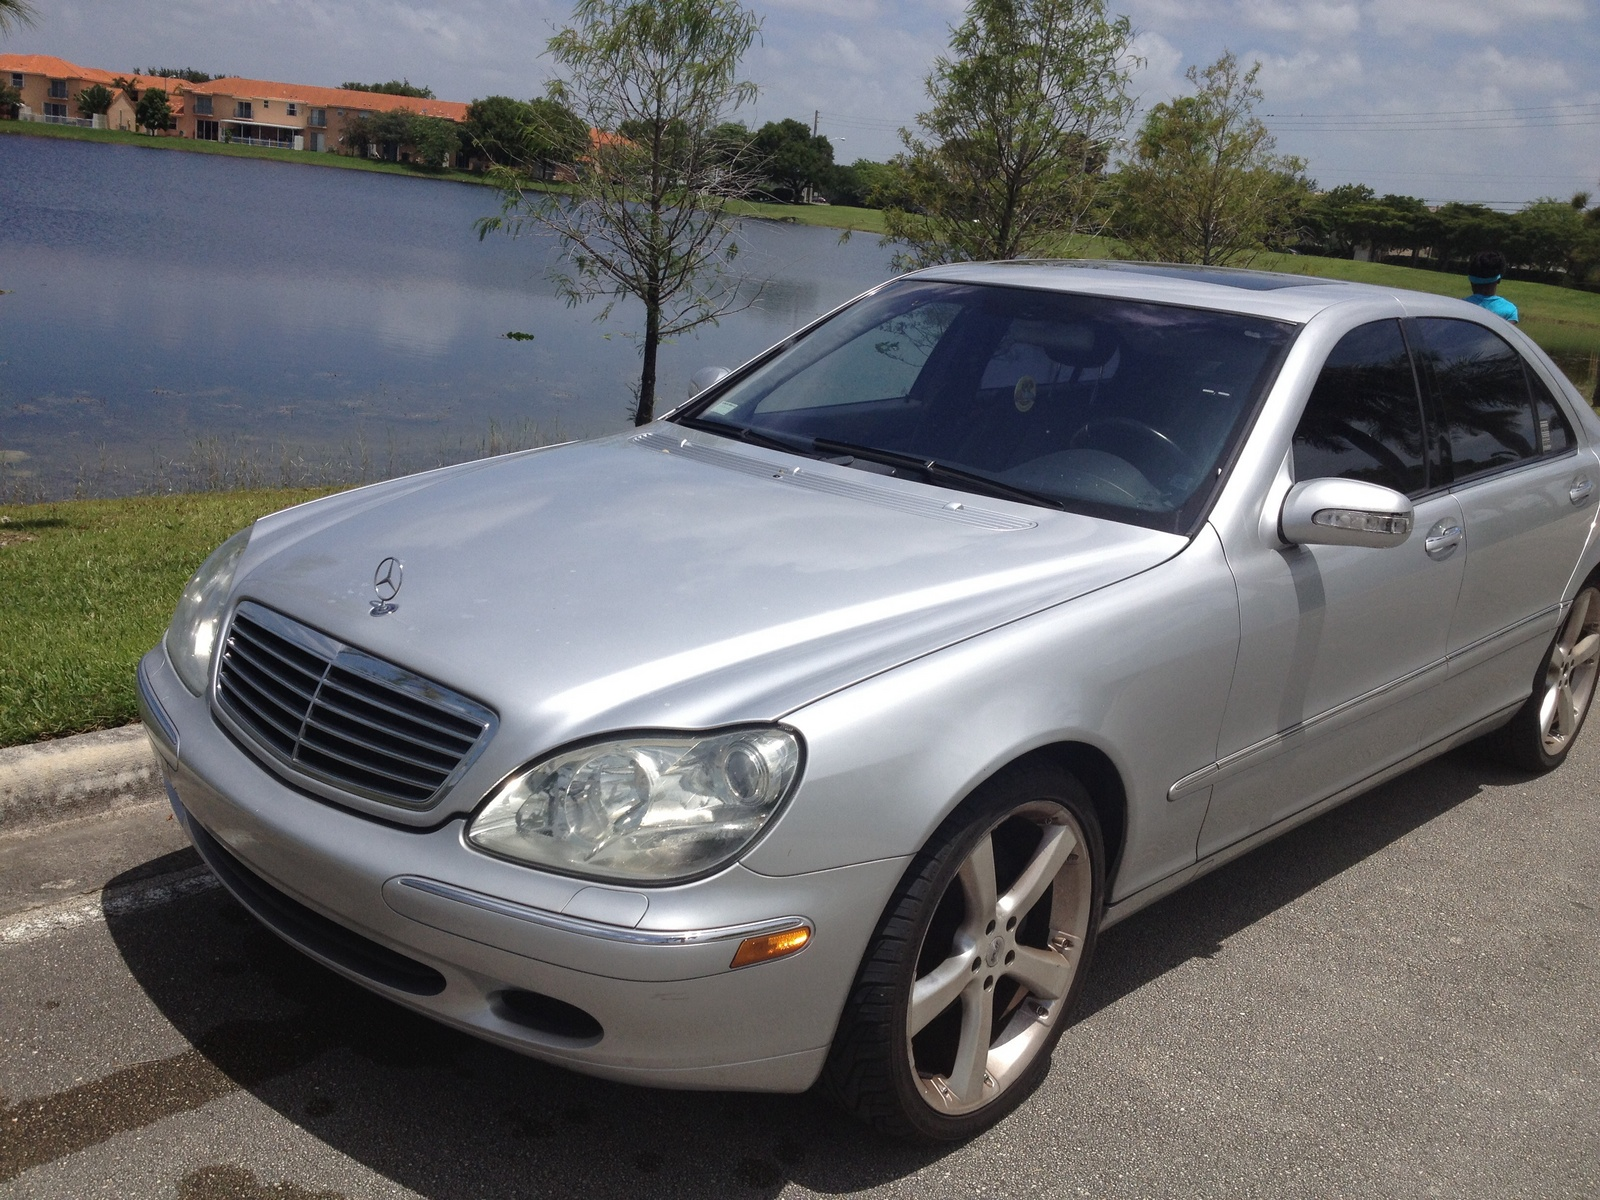 2001 mercedes benz s class pictures cargurus for S430 mercedes benz